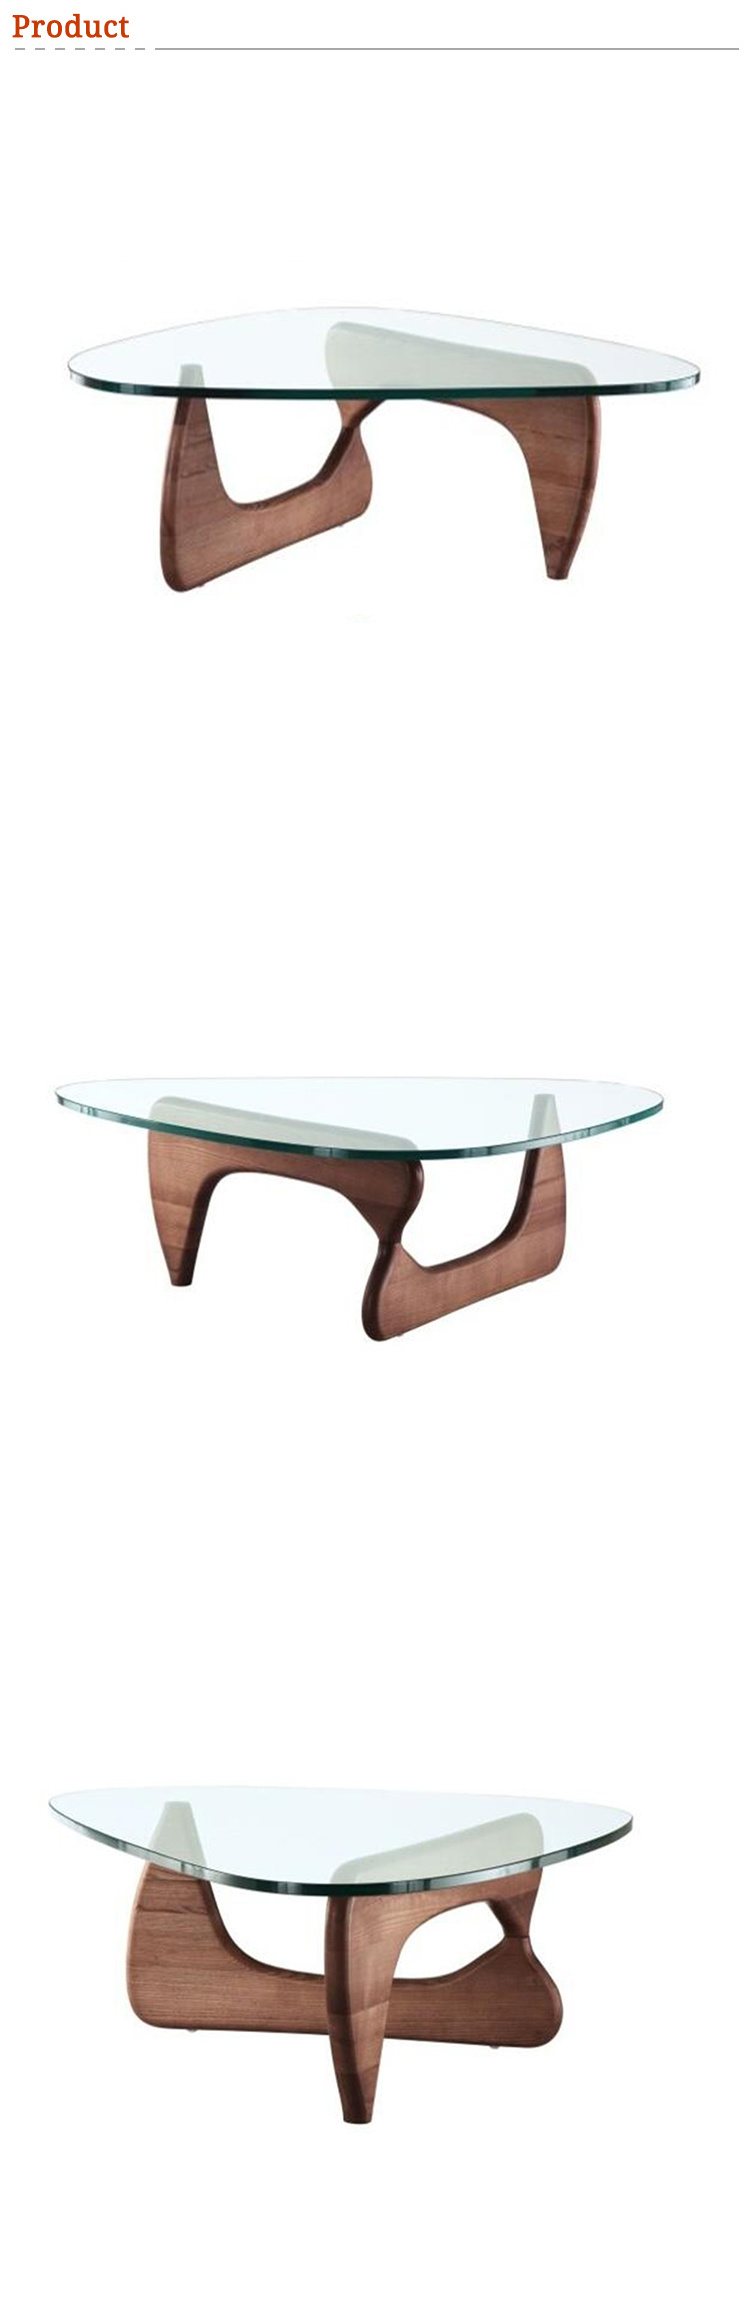 - Wholesale Hotel Lobby Furniture Small Round Modern Tempered Glass